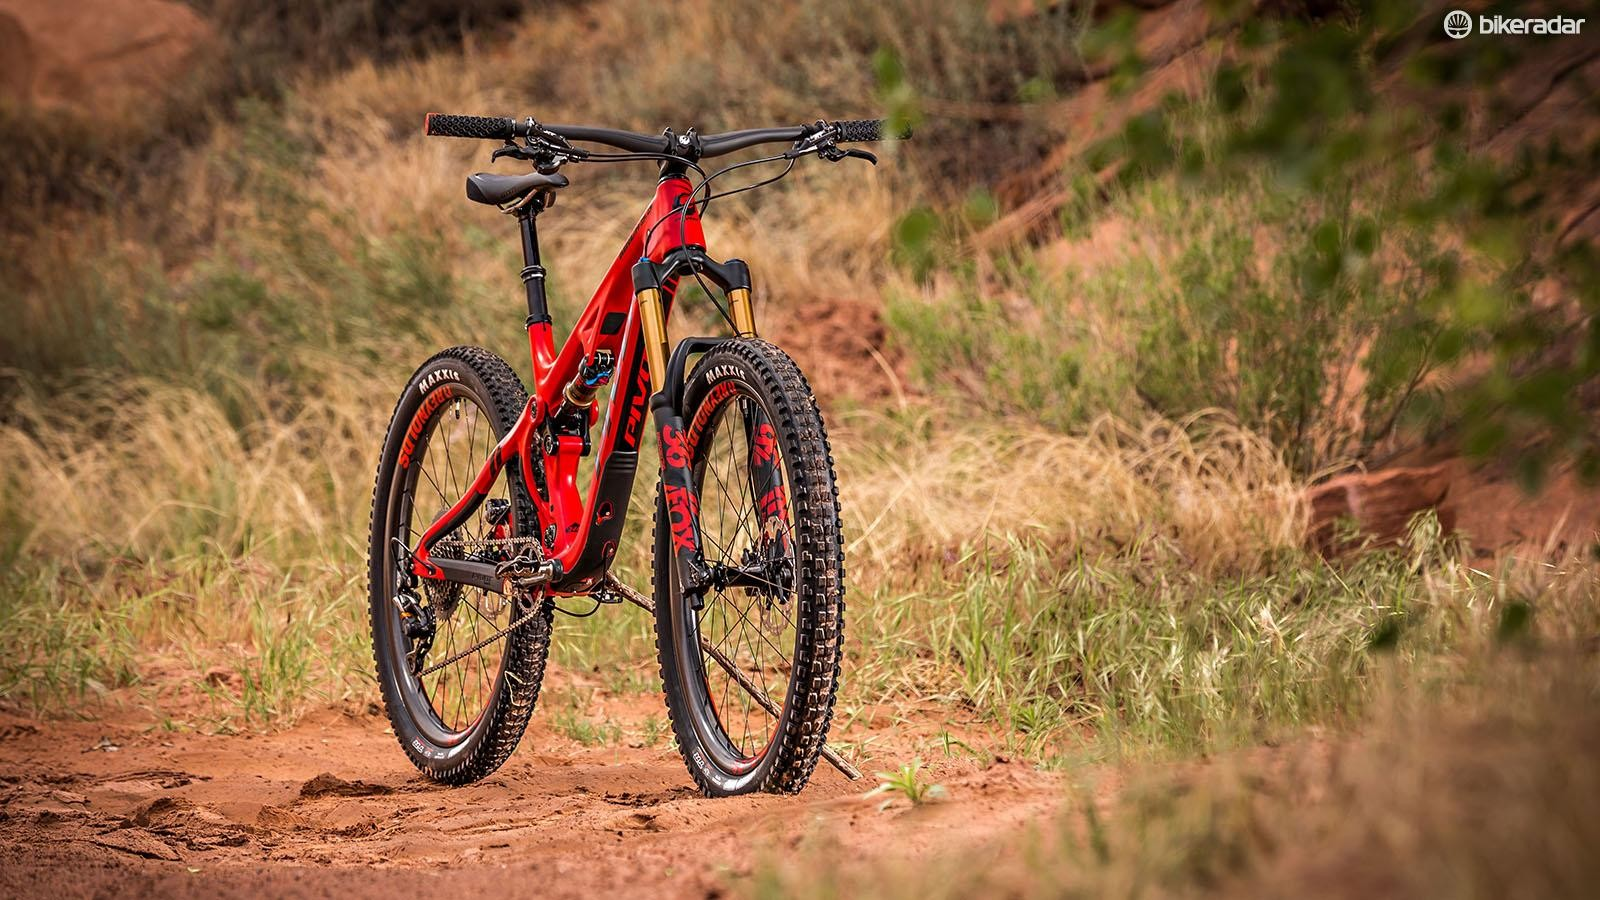 The Mach 5.5 Carbon is an outstanding entrant into the trail bike market